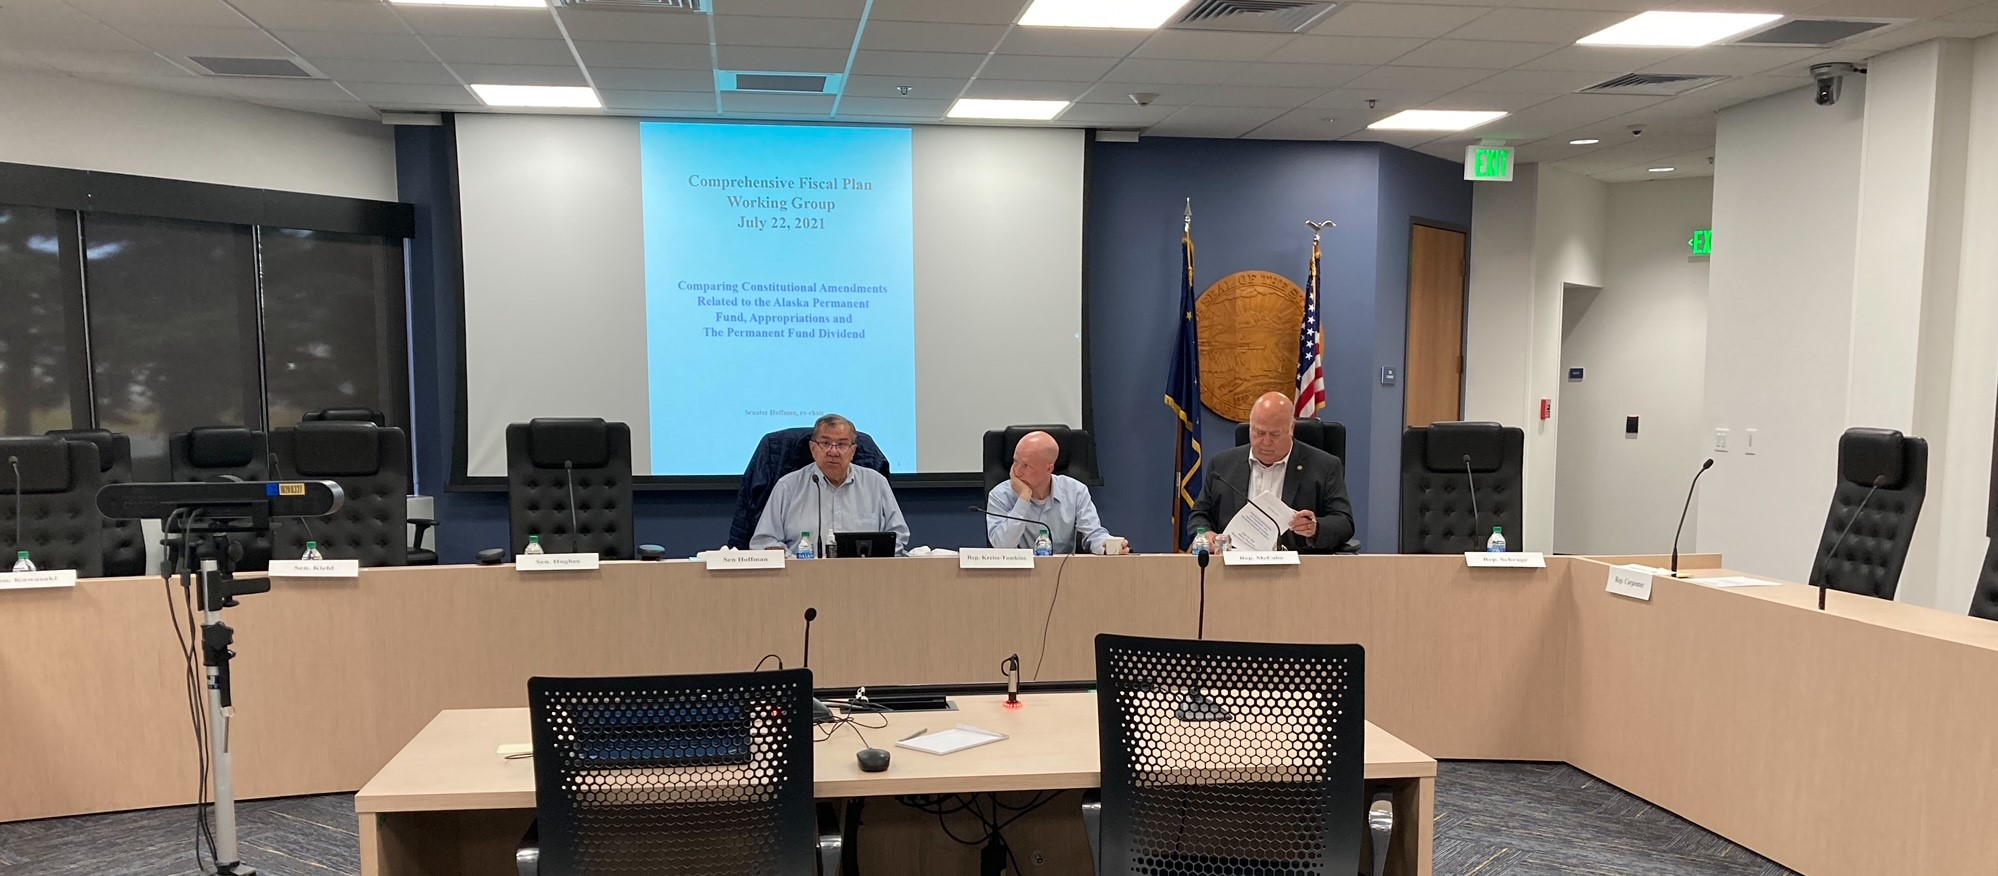 Sen. Lyman Hoffman, D-Bethel; Rep. Jonathan Kreiss-Tomkins, D-Sitka; and Rep. Kevin McCabe, R-Big Lake, attend a comprehensive fiscal plan working group meeting on July 23, 2021, at the Anchorage Legislative Information Office. (Photo by Andrew Kitchenman/KTOO and Alaska Public Media)